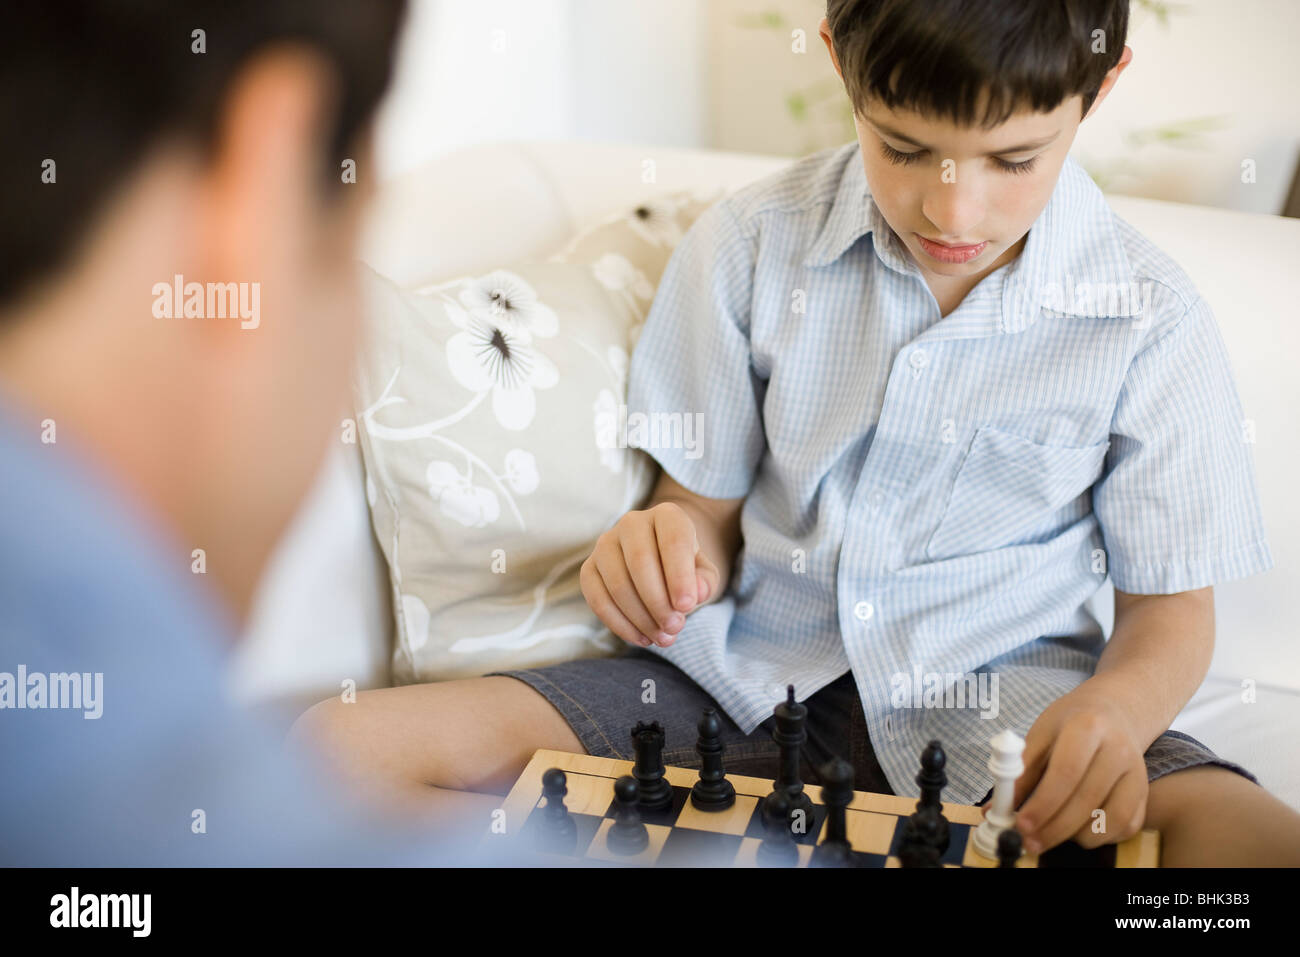 Boy playing chess with his father, cropped - Stock Image